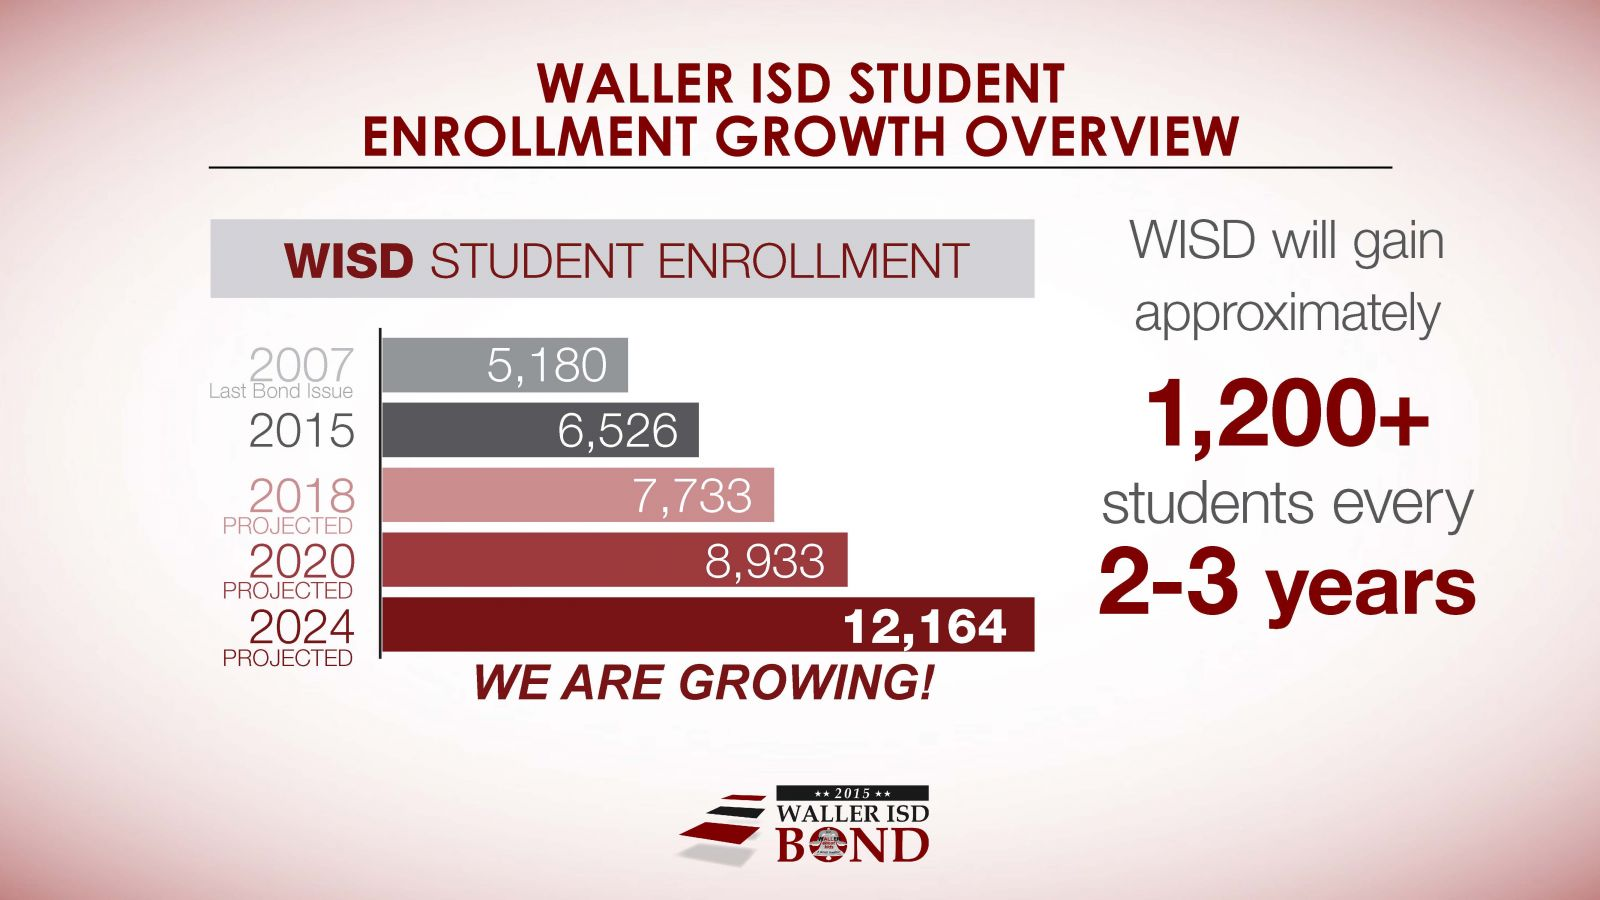 Enrollment growth overview